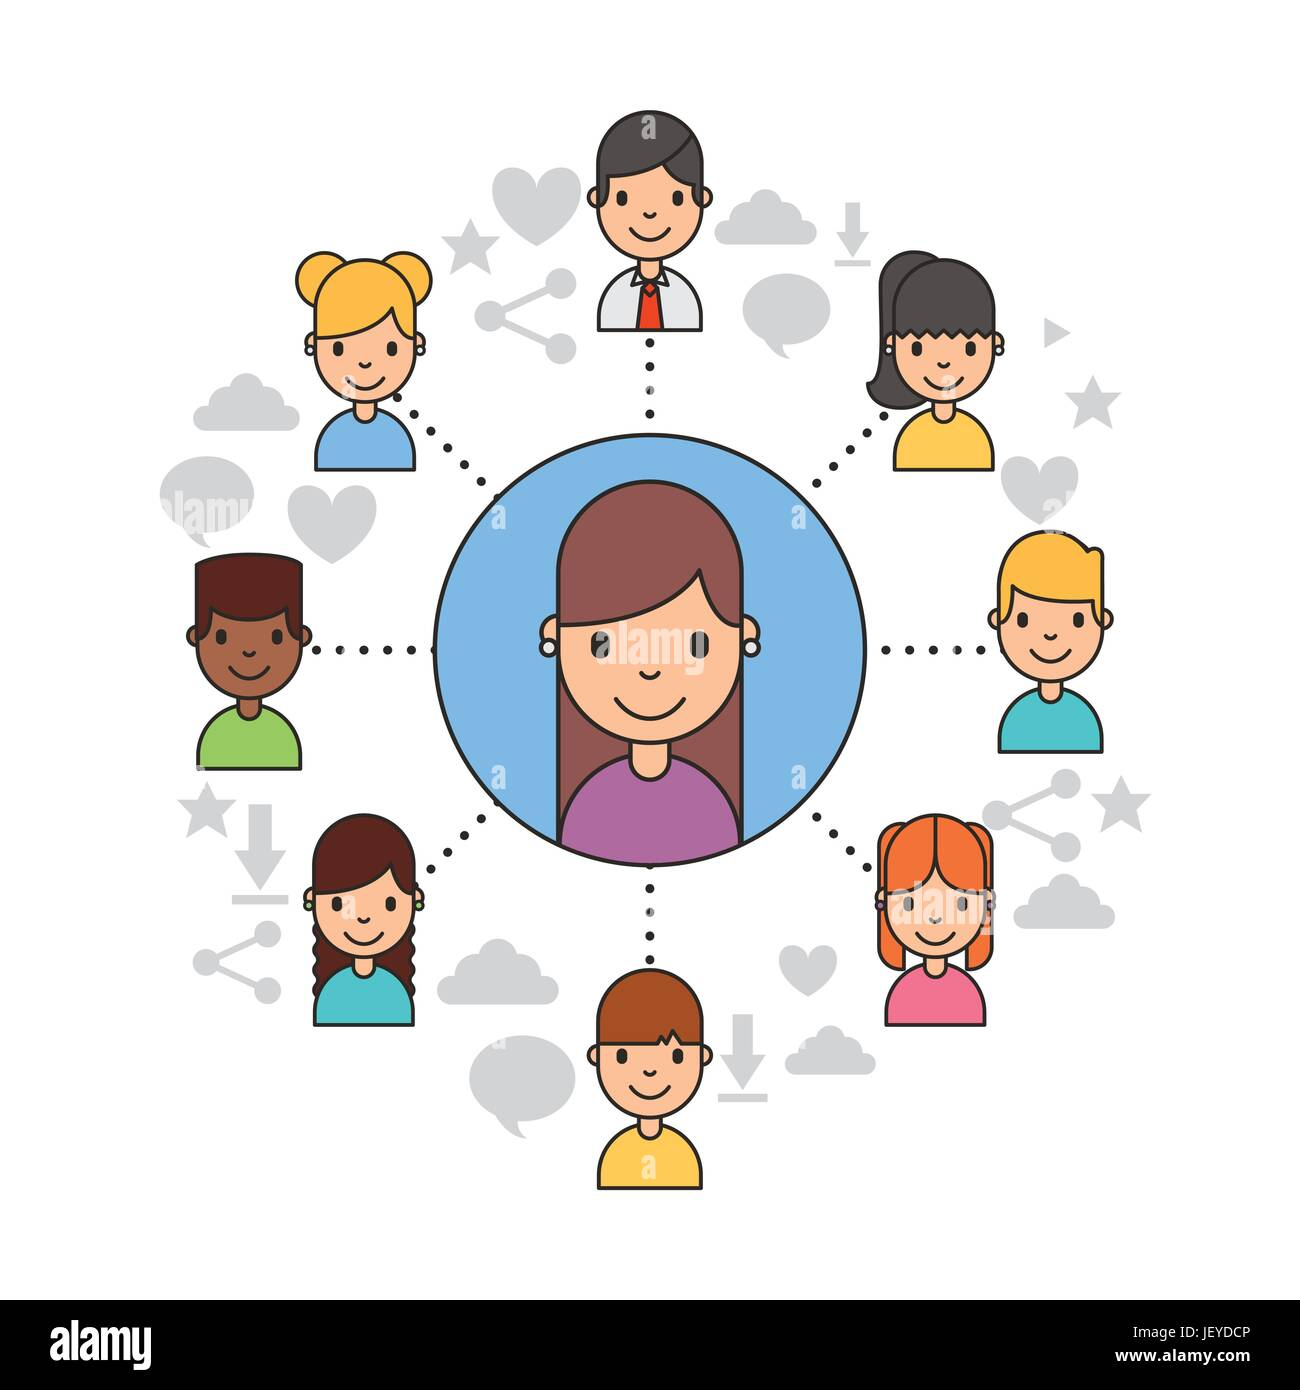 Applications people network - Stock Image